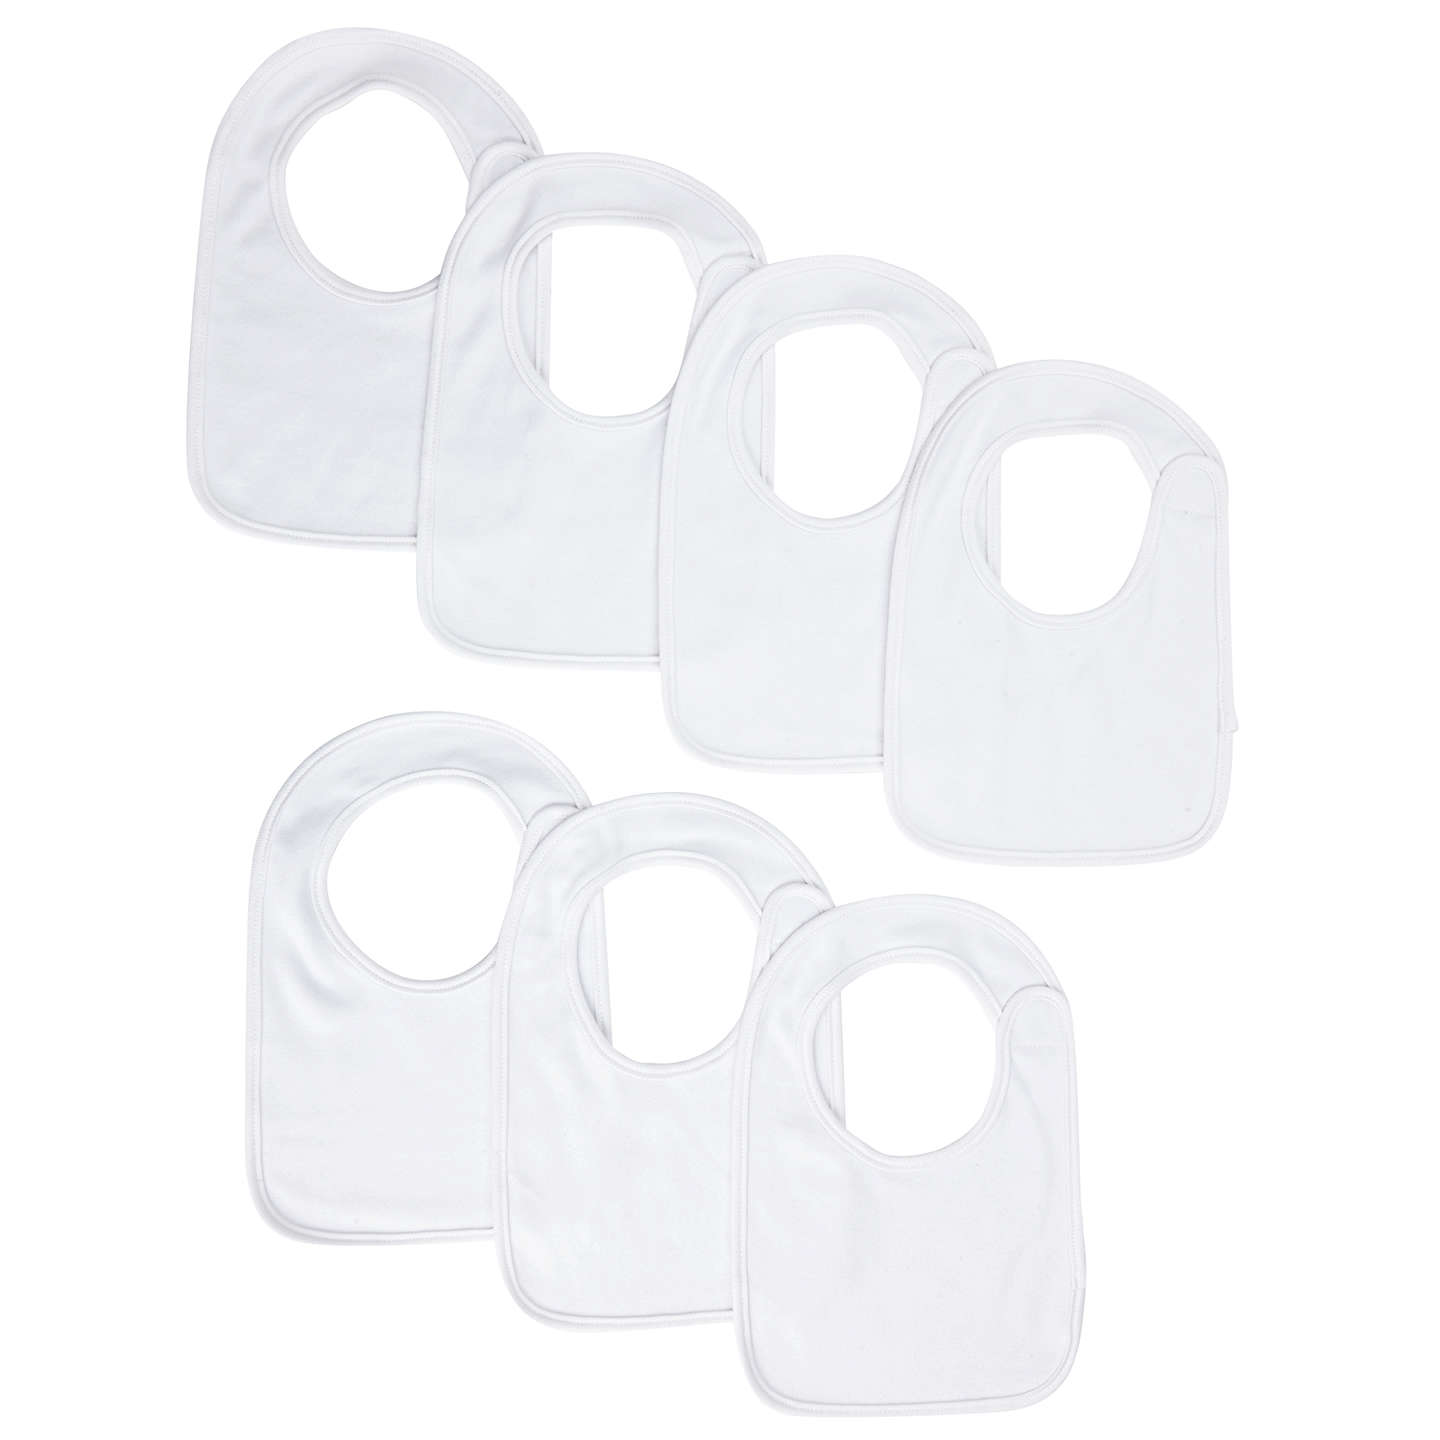 BuyJohn Lewis Baby White Bibs, Pack of 7, White Online at johnlewis.com